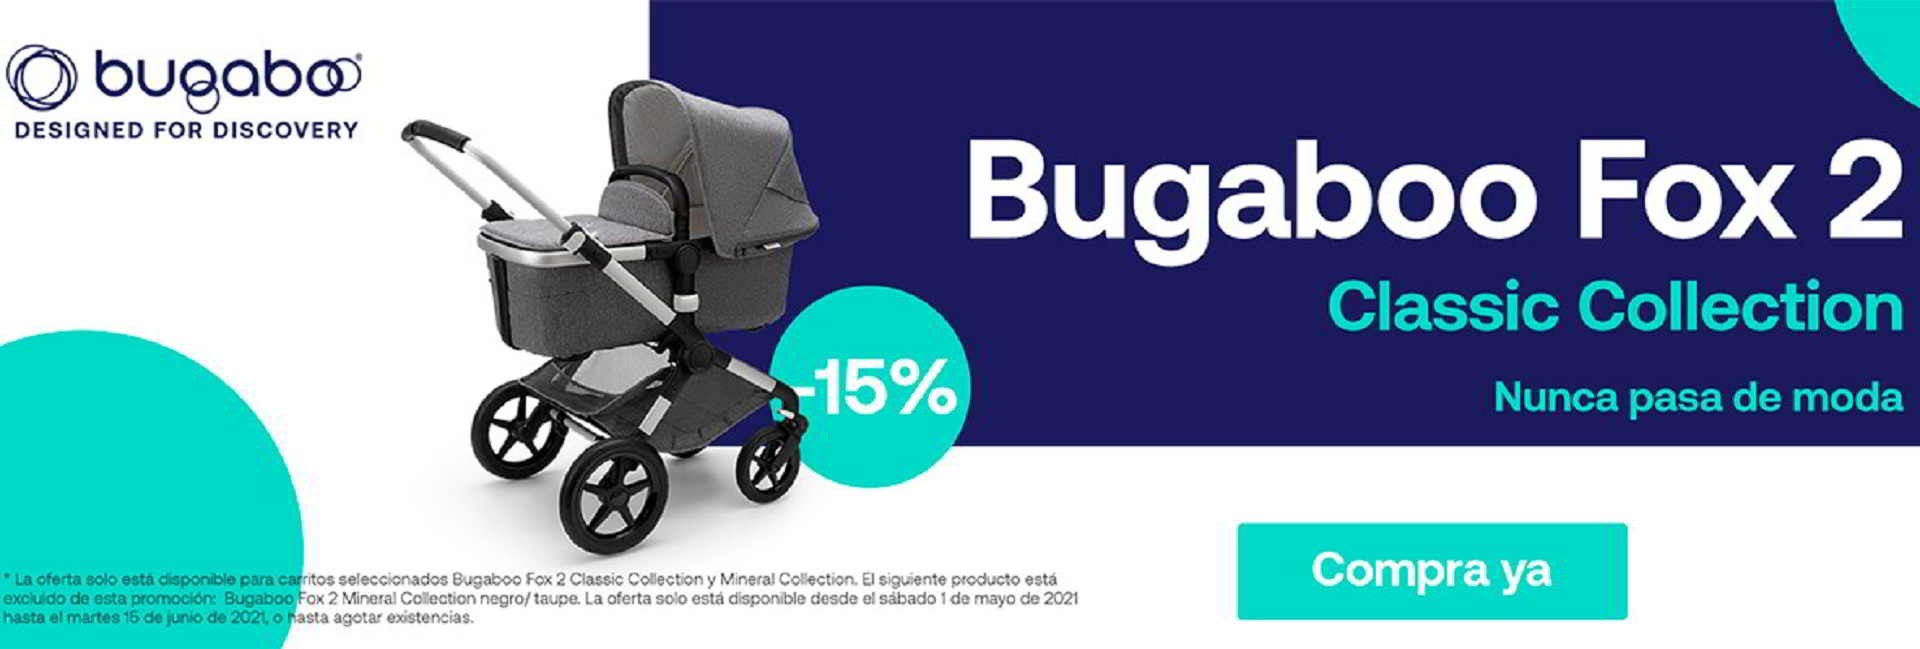 BUGABOO CLASSIC COLLECTION 15 % DE DESCUENTO